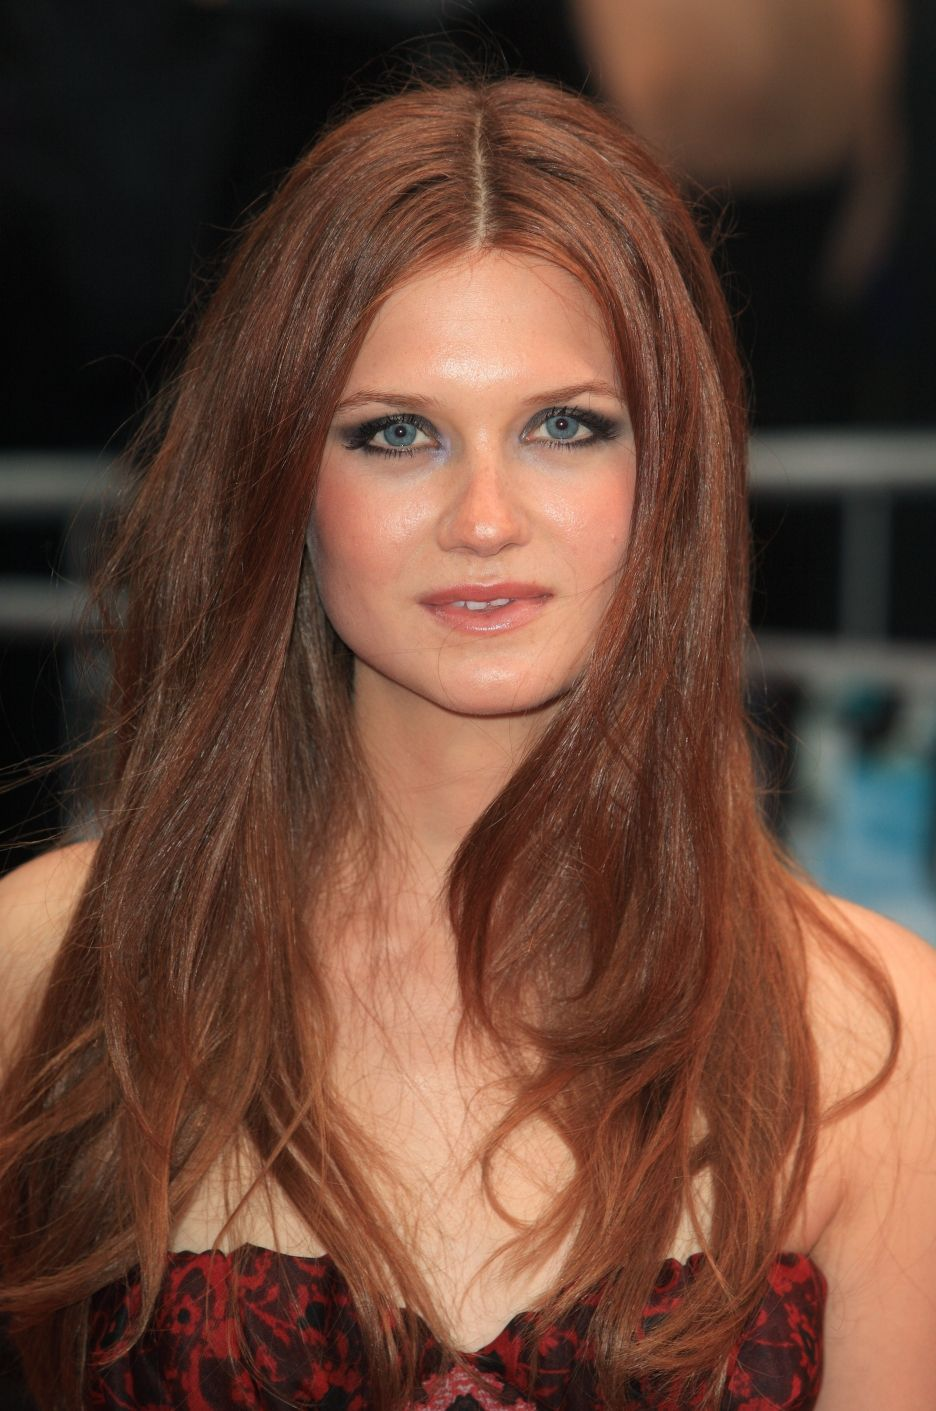 Bonnie Wright (born 1991) Bonnie Wright (born 1991) new images